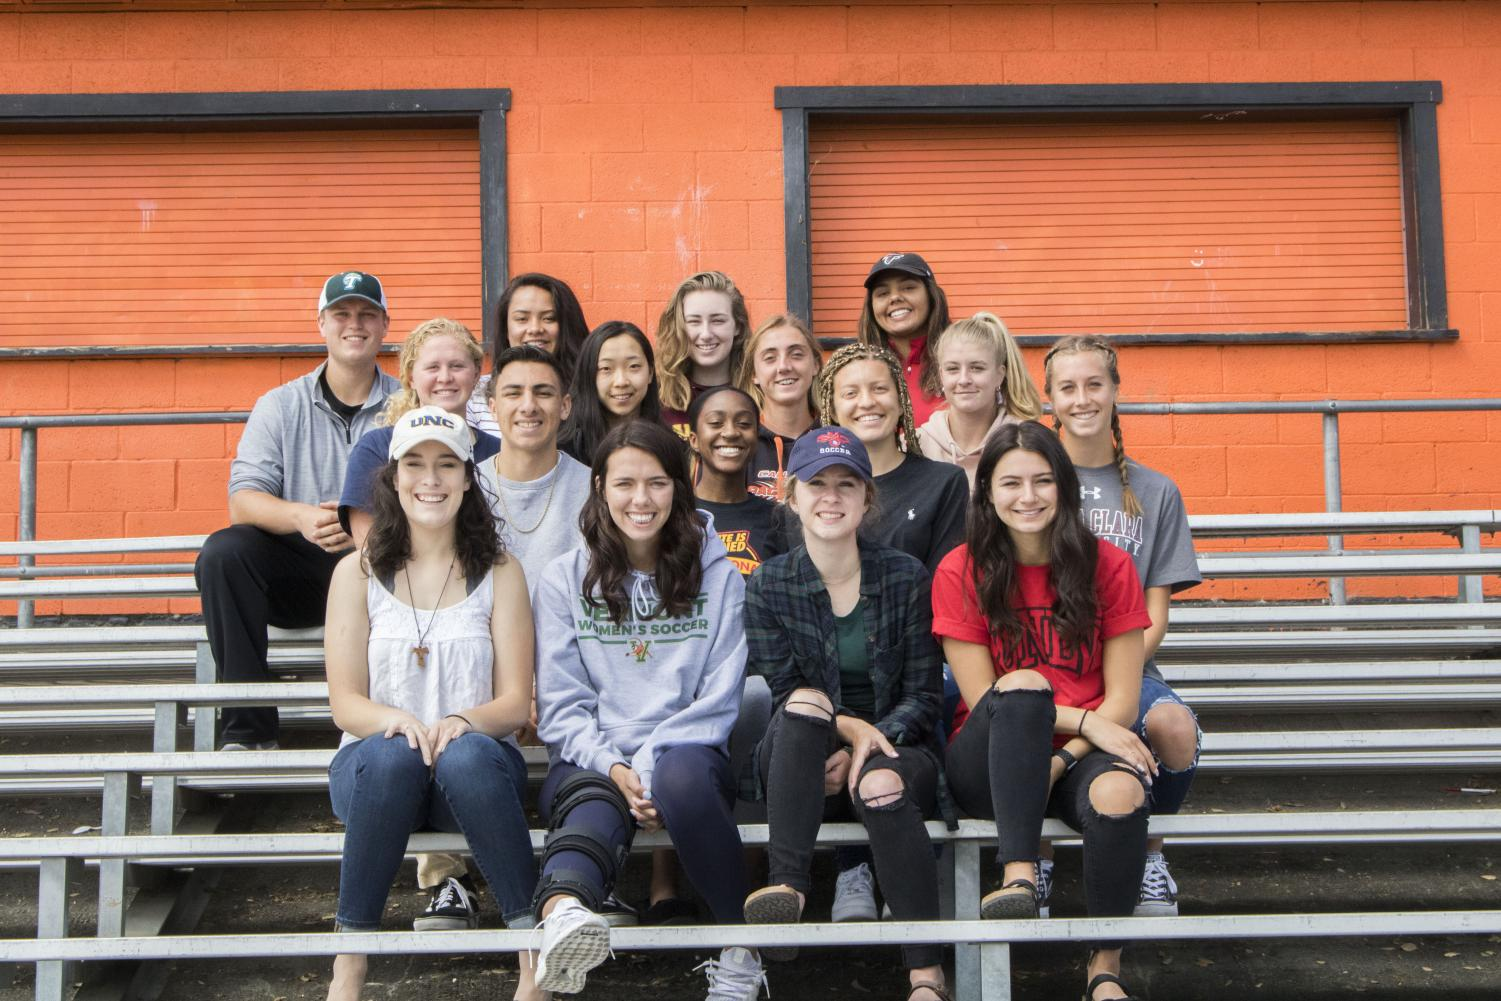 Senior athletes continuing their careers in college include front row from left to right, Ashley Franza, Abby Pokrzywinski, Emily Wright, and Isabella Perez; second row, Israel Mendoza, Mikaela Bismillah, Sydney Wilson, and Kayla Neumann; third row, Drew Halvorson, Meichen Zhu, Alyssa Brewer, Erin Cady; fourth row, Ryan Wright, Teisa Tuioti, Jenna Hahn, and Alexis Hooper.   Not pictured, Gabriella Edmond, Bryan Friedel, Alexis Berlin, and Robert Poynter.